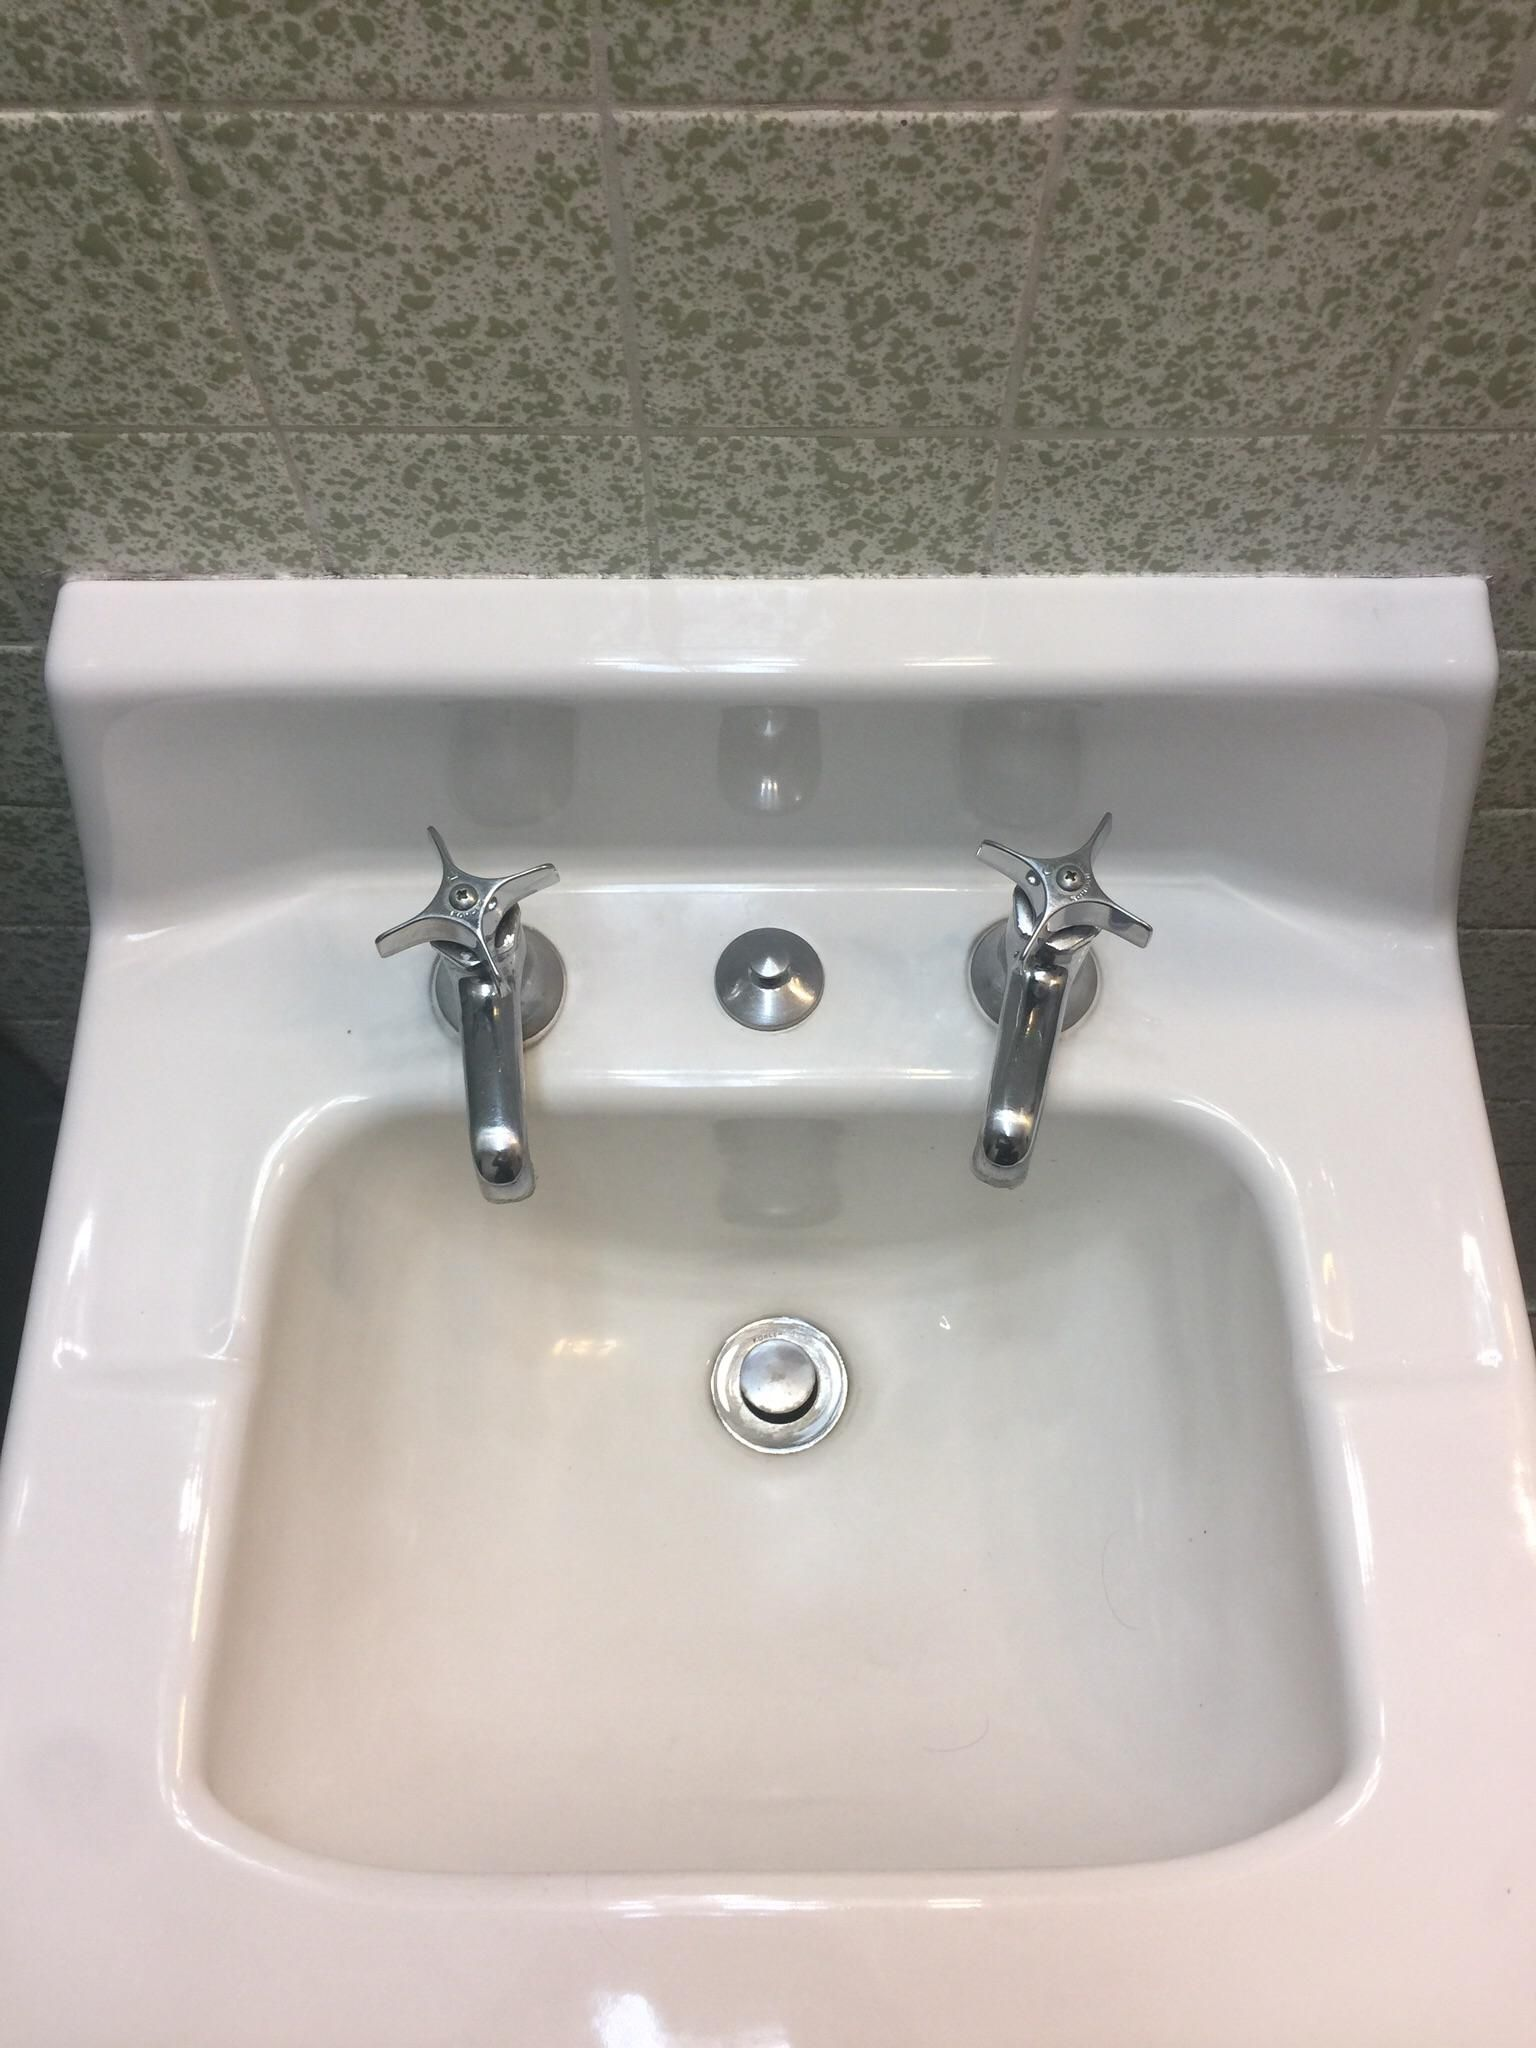 This bathroom sink has separate faucets for hot and cold water ...